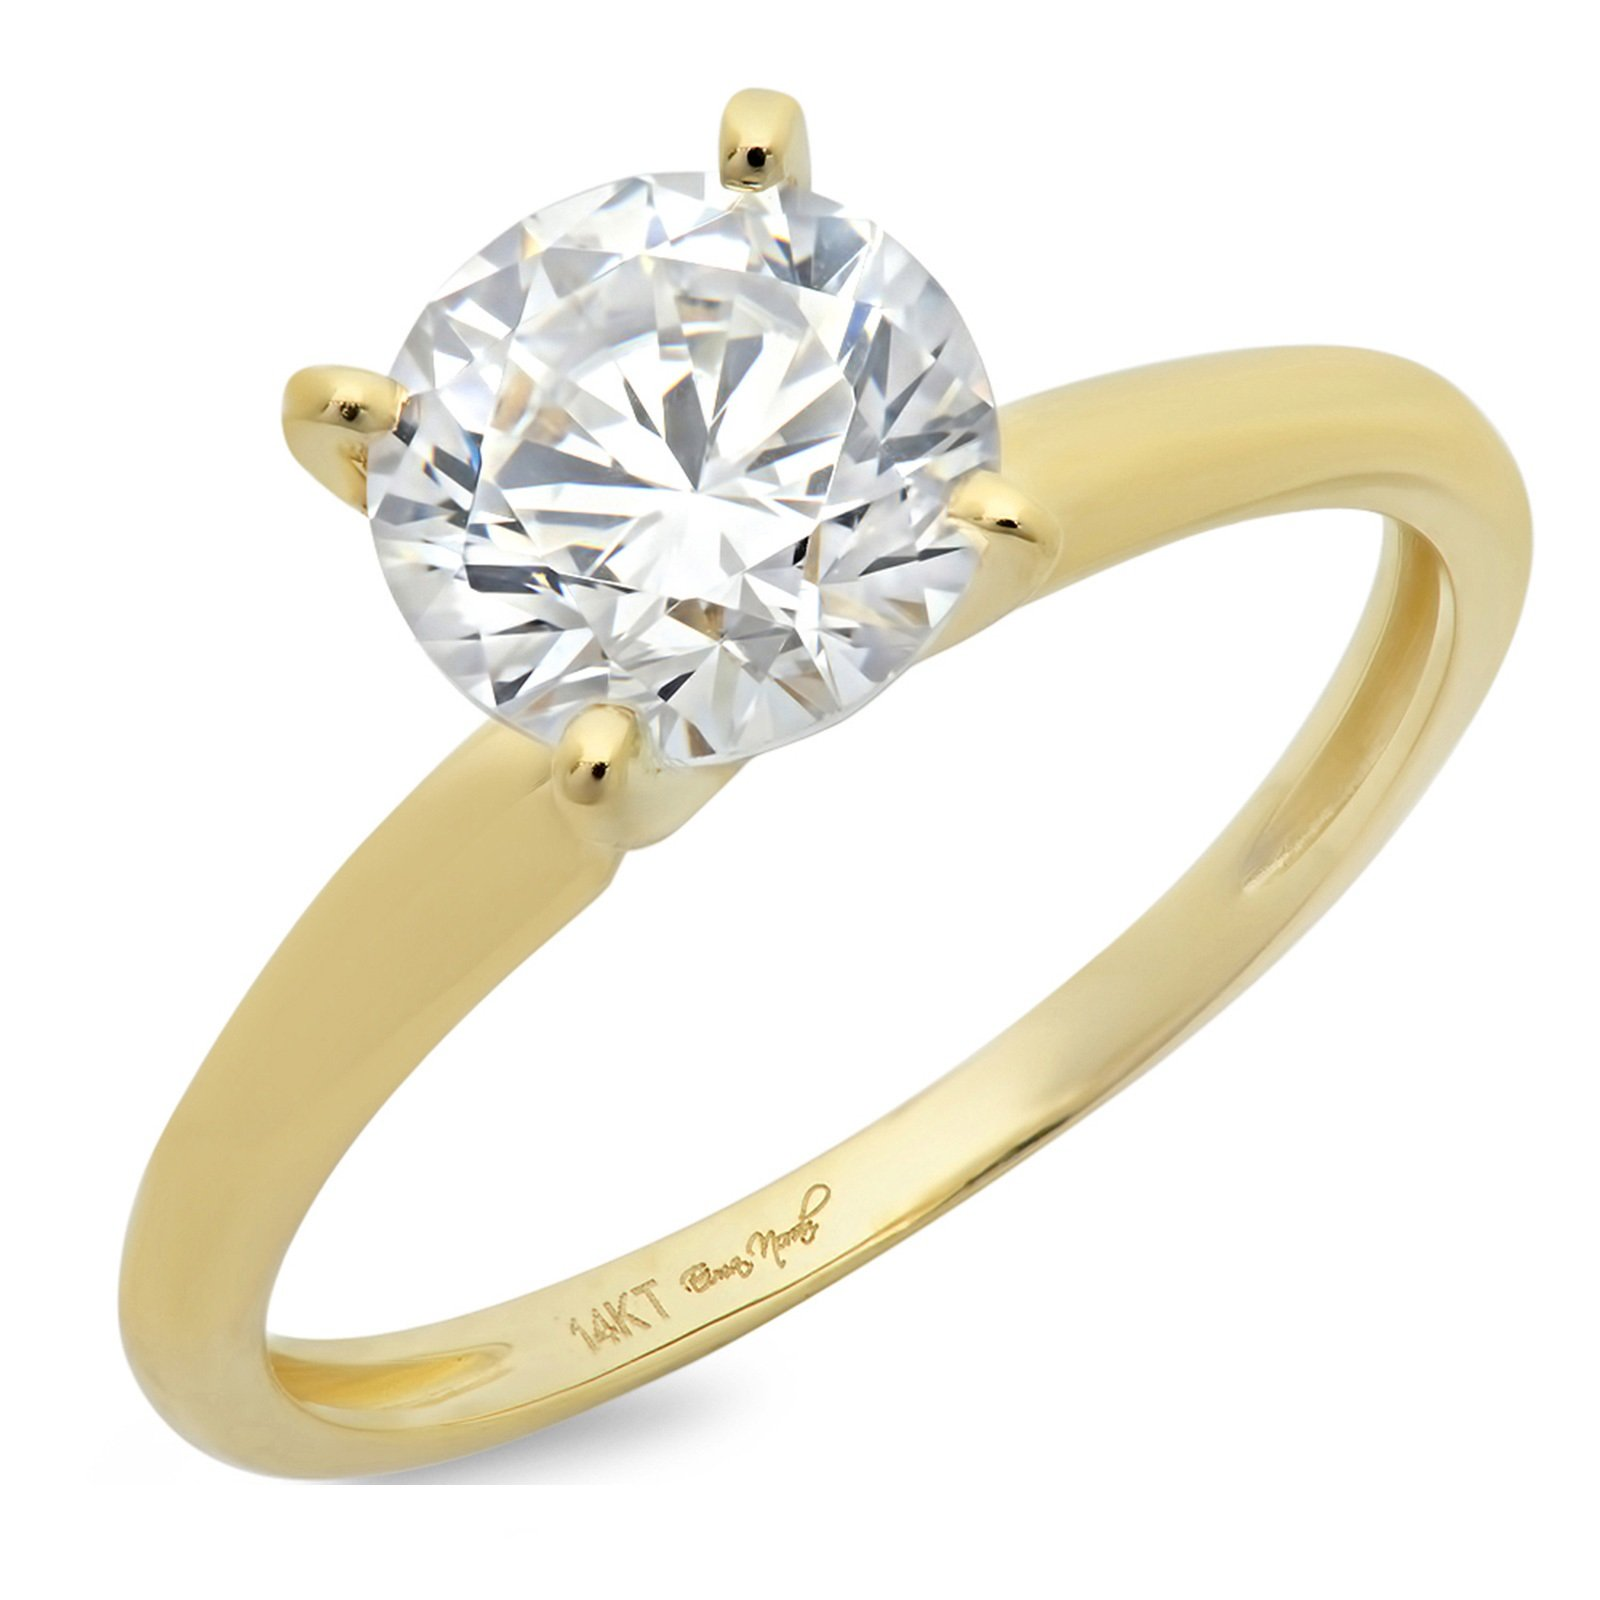 1.0 ct Brilliant Round Cut Solitaire Highest Quality Moissanite Ideal VVS1 D 4-Prong Engagement Wedding Bridal Promise Anniversary Ring in Solid Real 14k Yellow Gold for Women